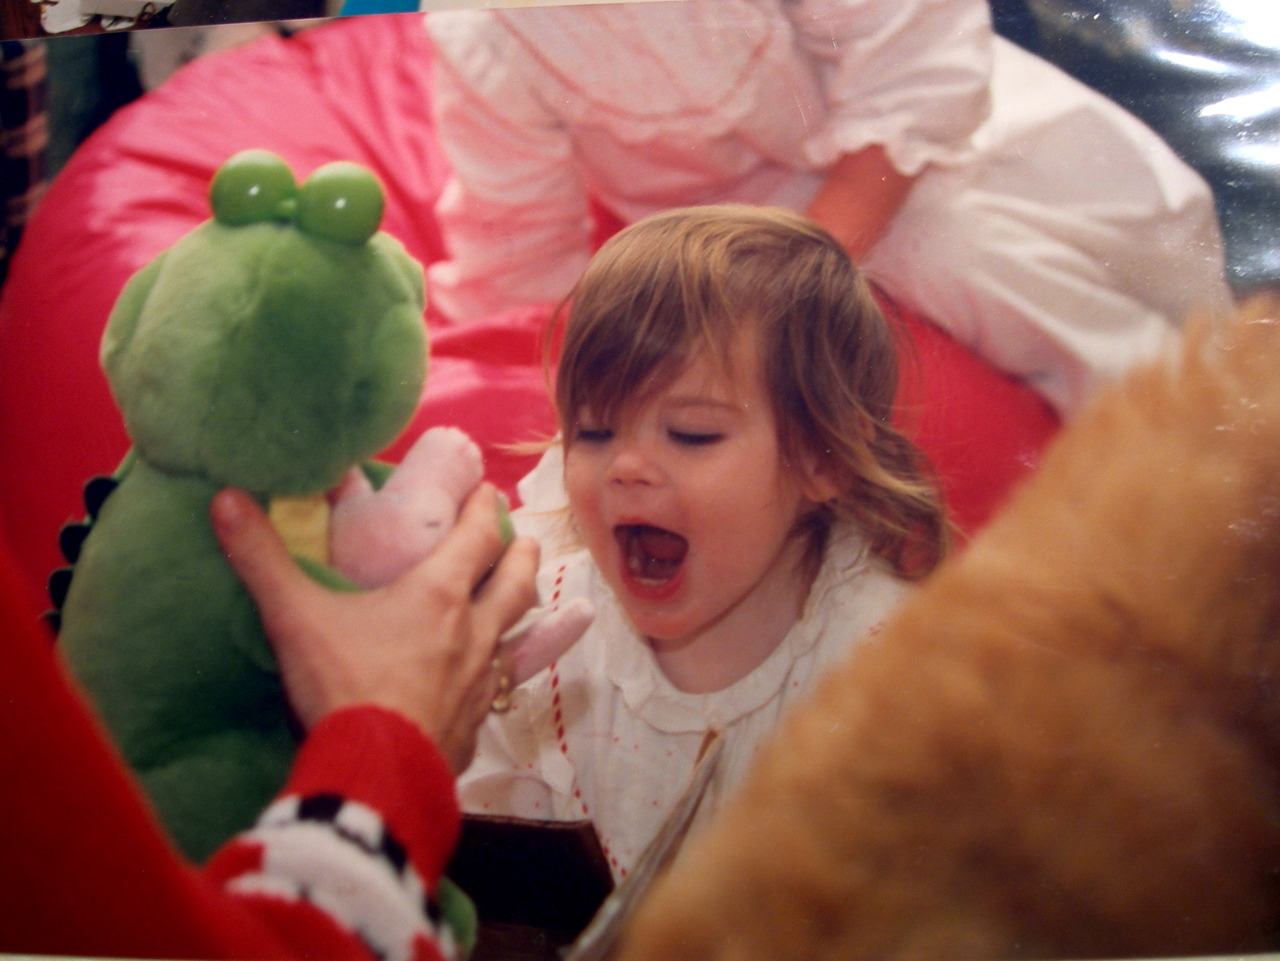 i wish a stuffed crocodile was still this exciting.